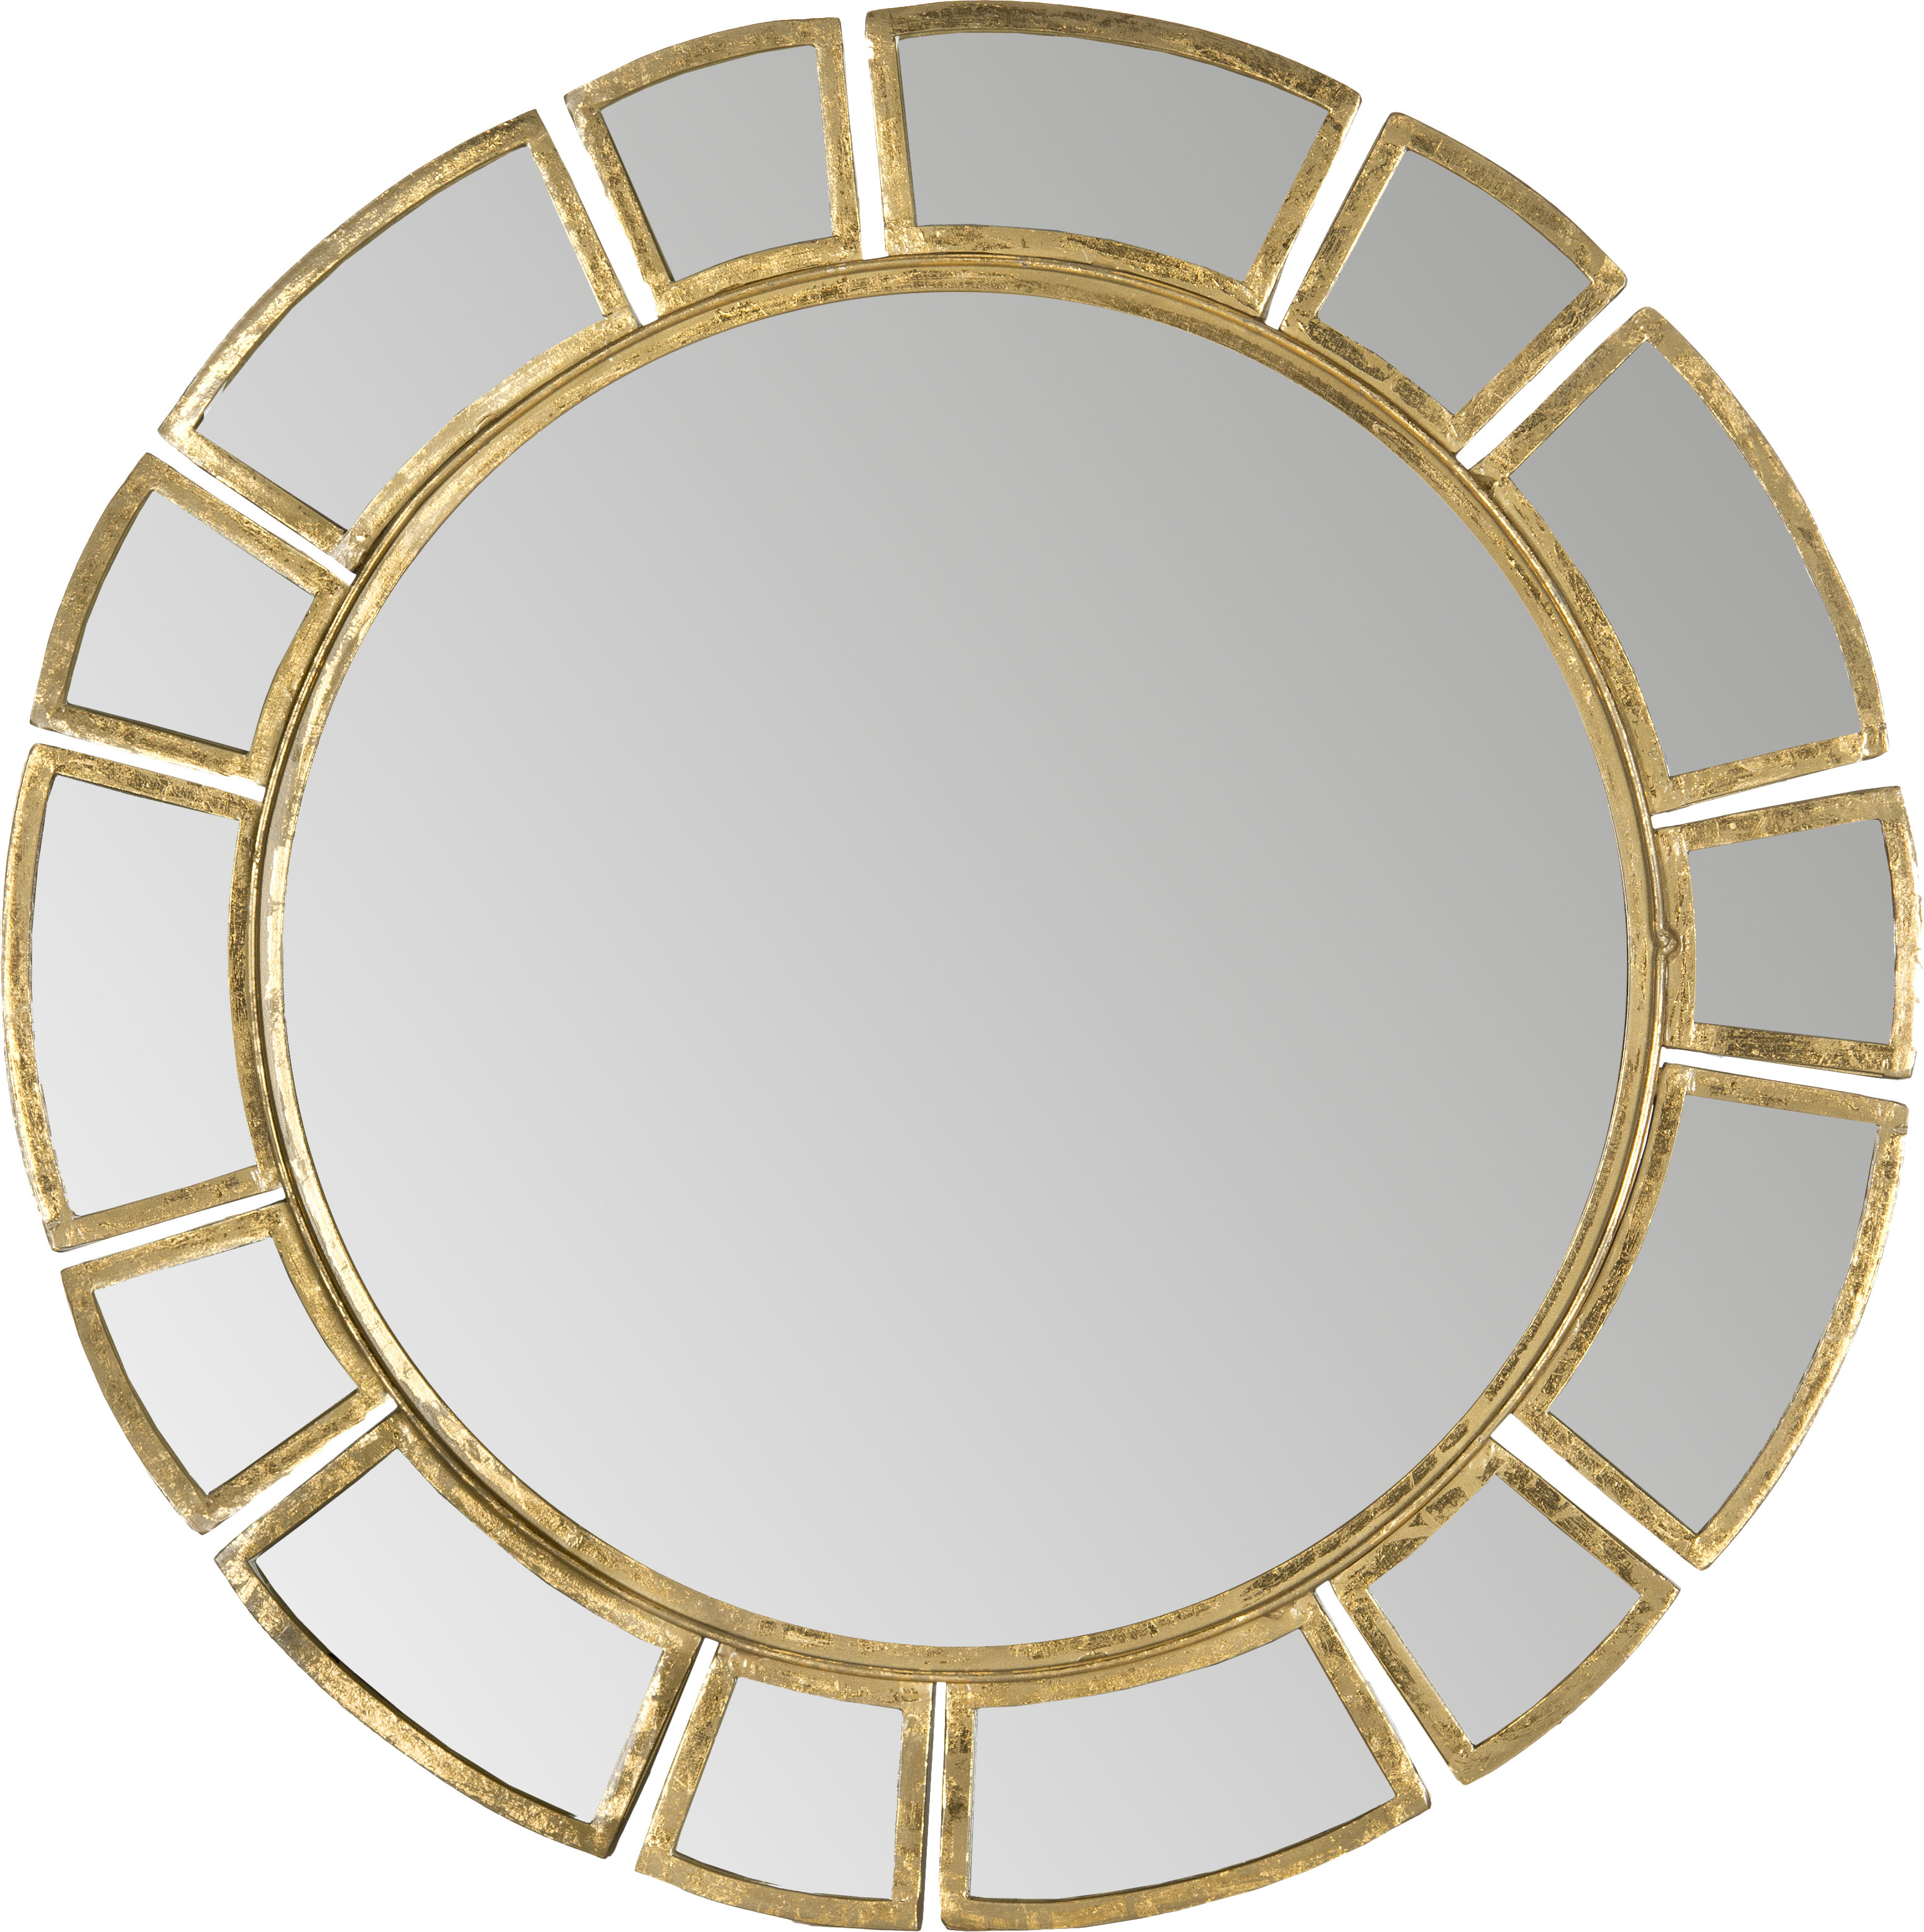 Birksgate Round Antique Gold Patina Sunburst Wall Mirror Intended For Trendy Tata Openwork Round Wall Mirrors (View 14 of 20)